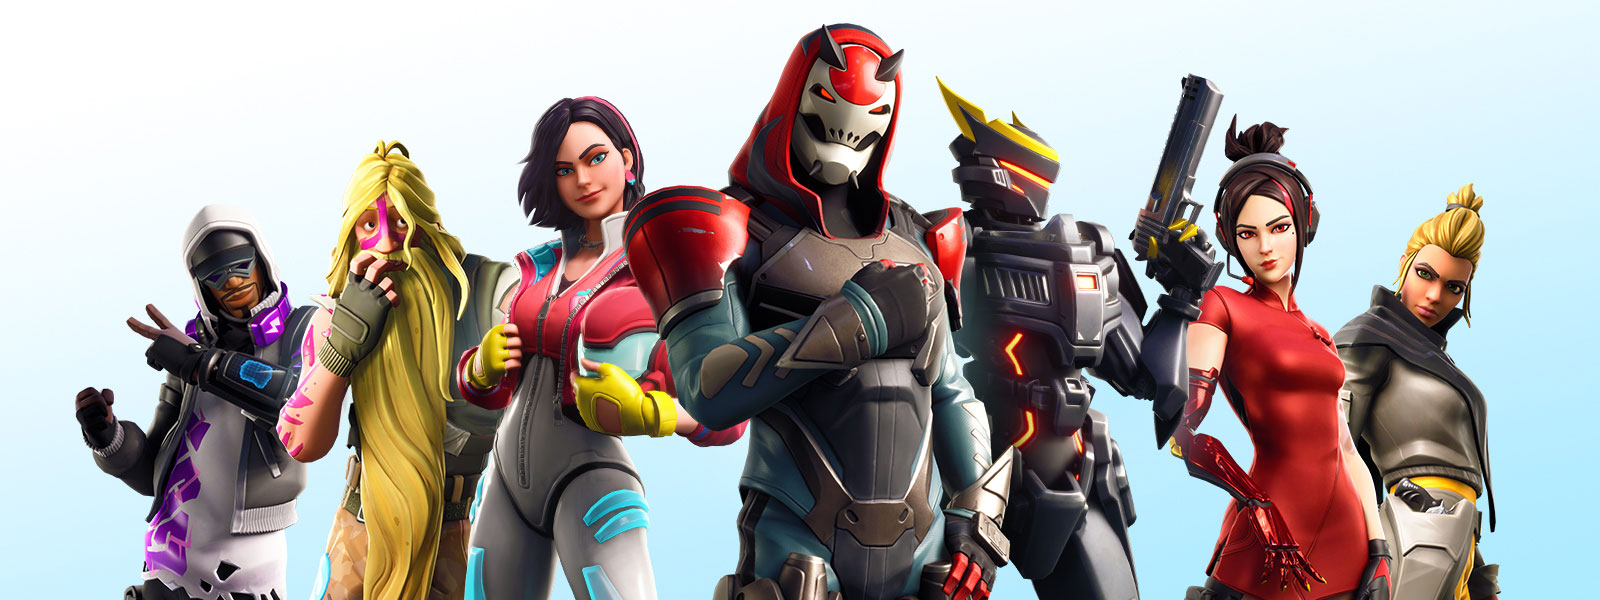 Various Fortnite characters posed in a V-formation